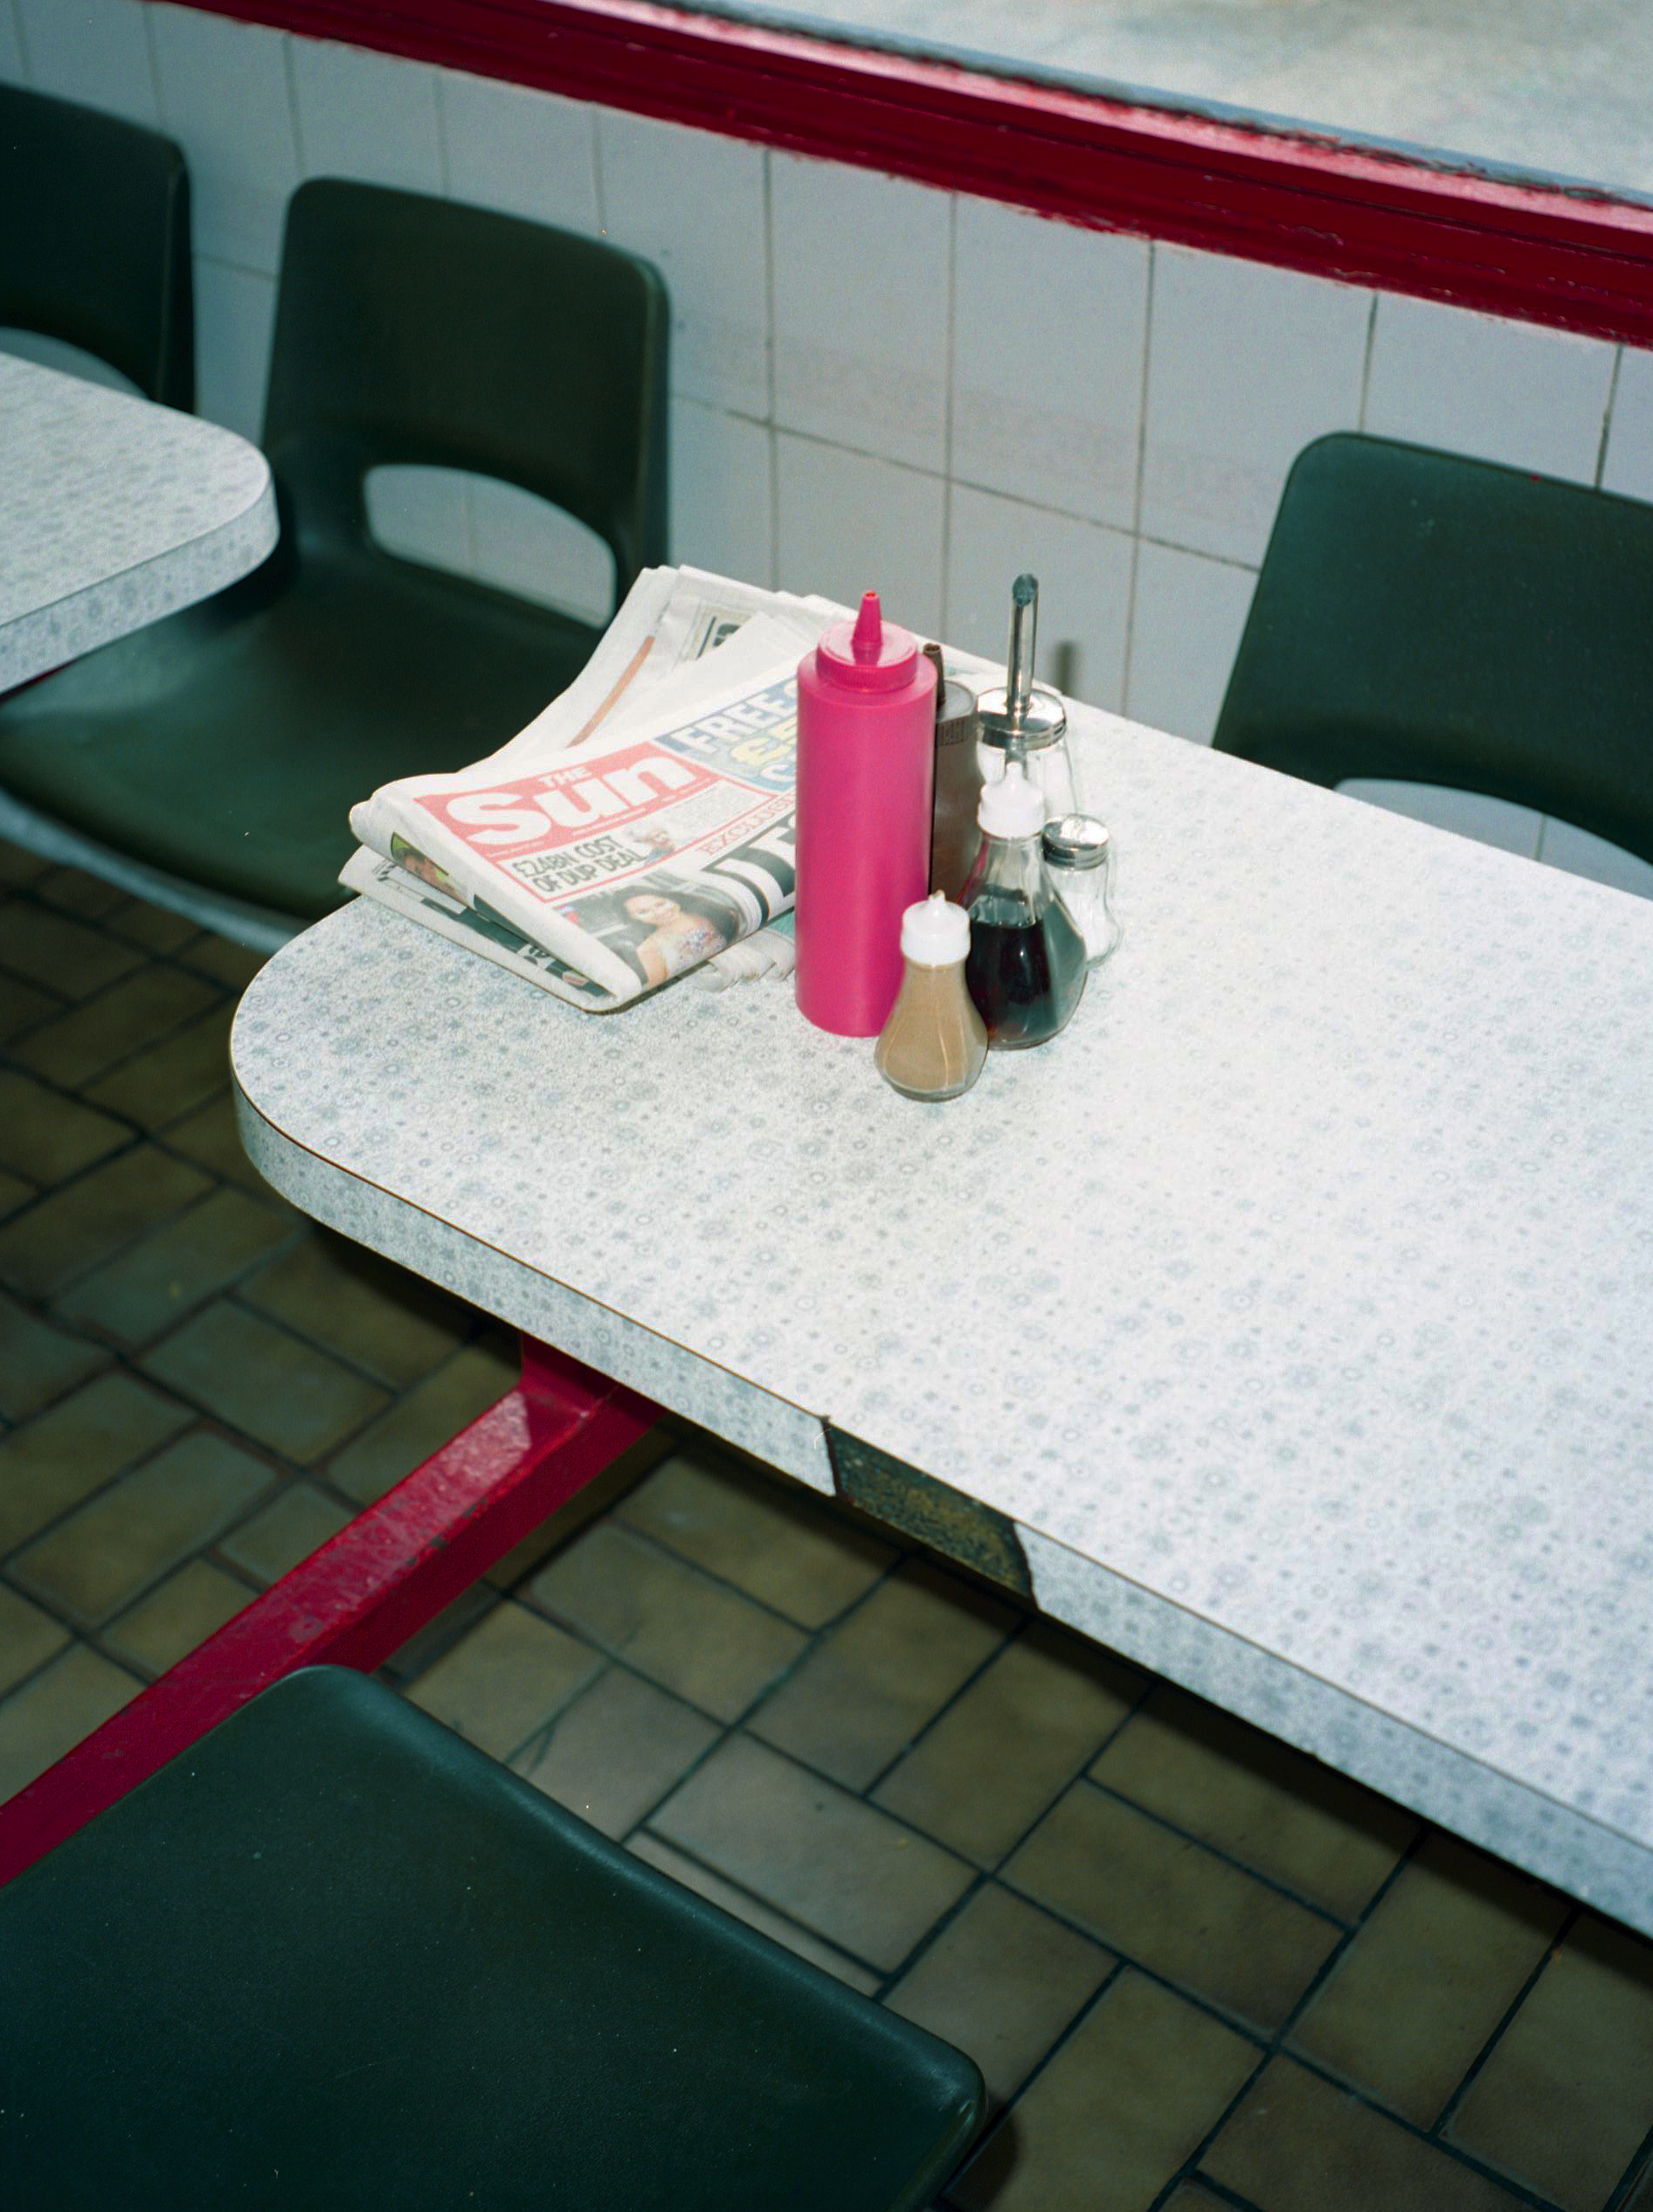 Image from the series  Spare Time & The City